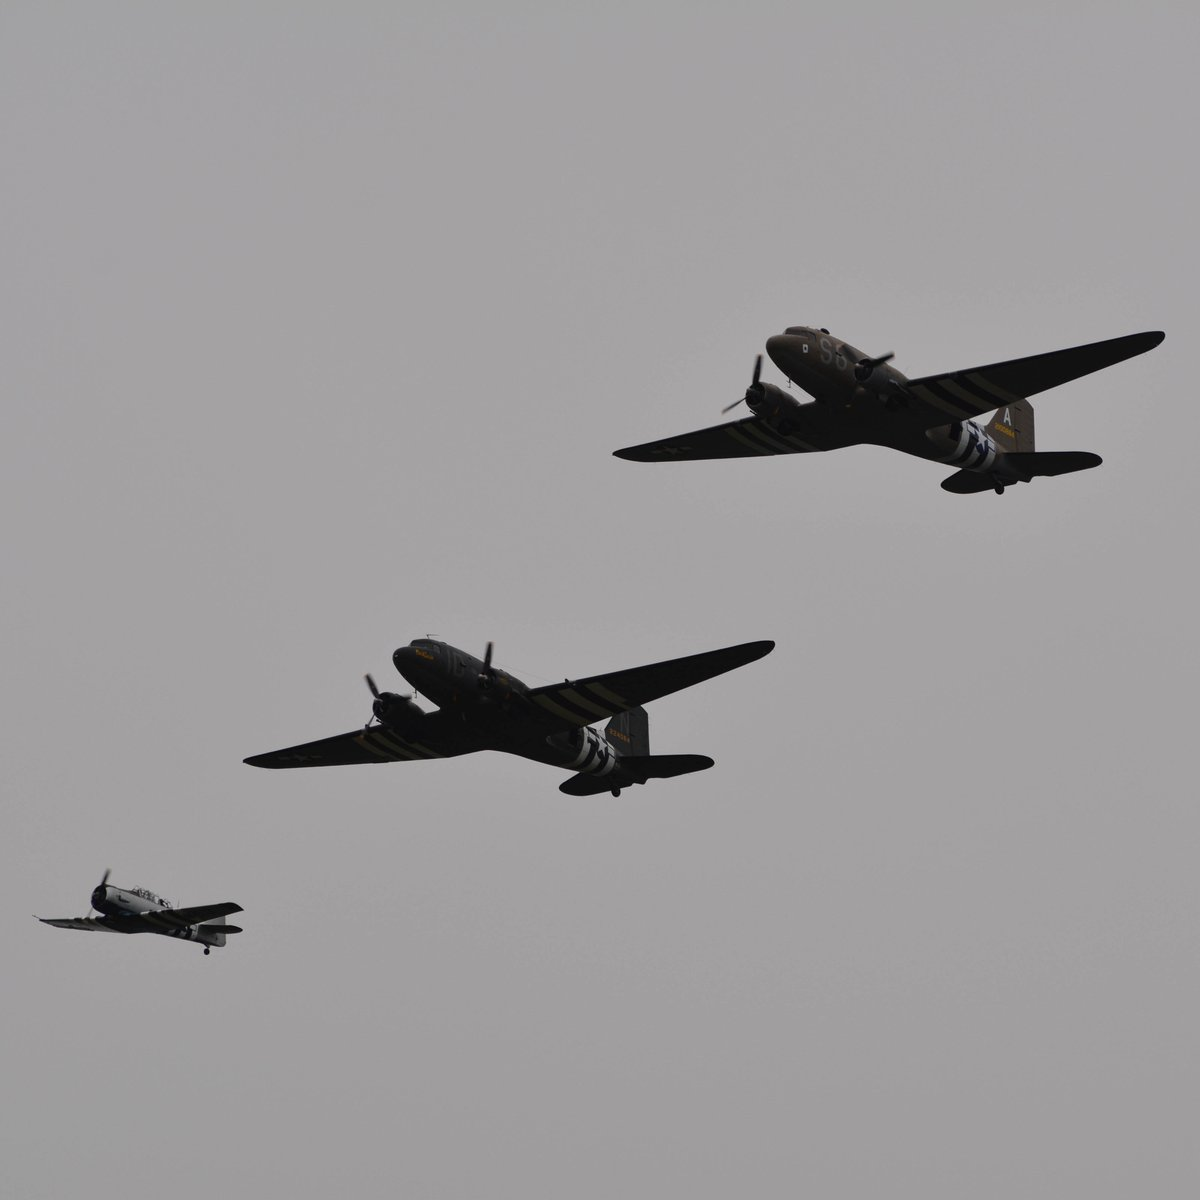 """A Harvard & two Douglas C-47 Dakotas: """"Placid Lassie"""" & """"Aces High"""" from the Daks Over Normandy Memorial Flight over Beachy Head on June 5th.   More photos here https://emcforcescars.com/daks-over-normandy-memorial-flight-75th-anniversary-of-d-day/…   #DAKSoverNormandy #DDay75thAnniversary #DDay #WWII #History #BeachyHead #C47"""